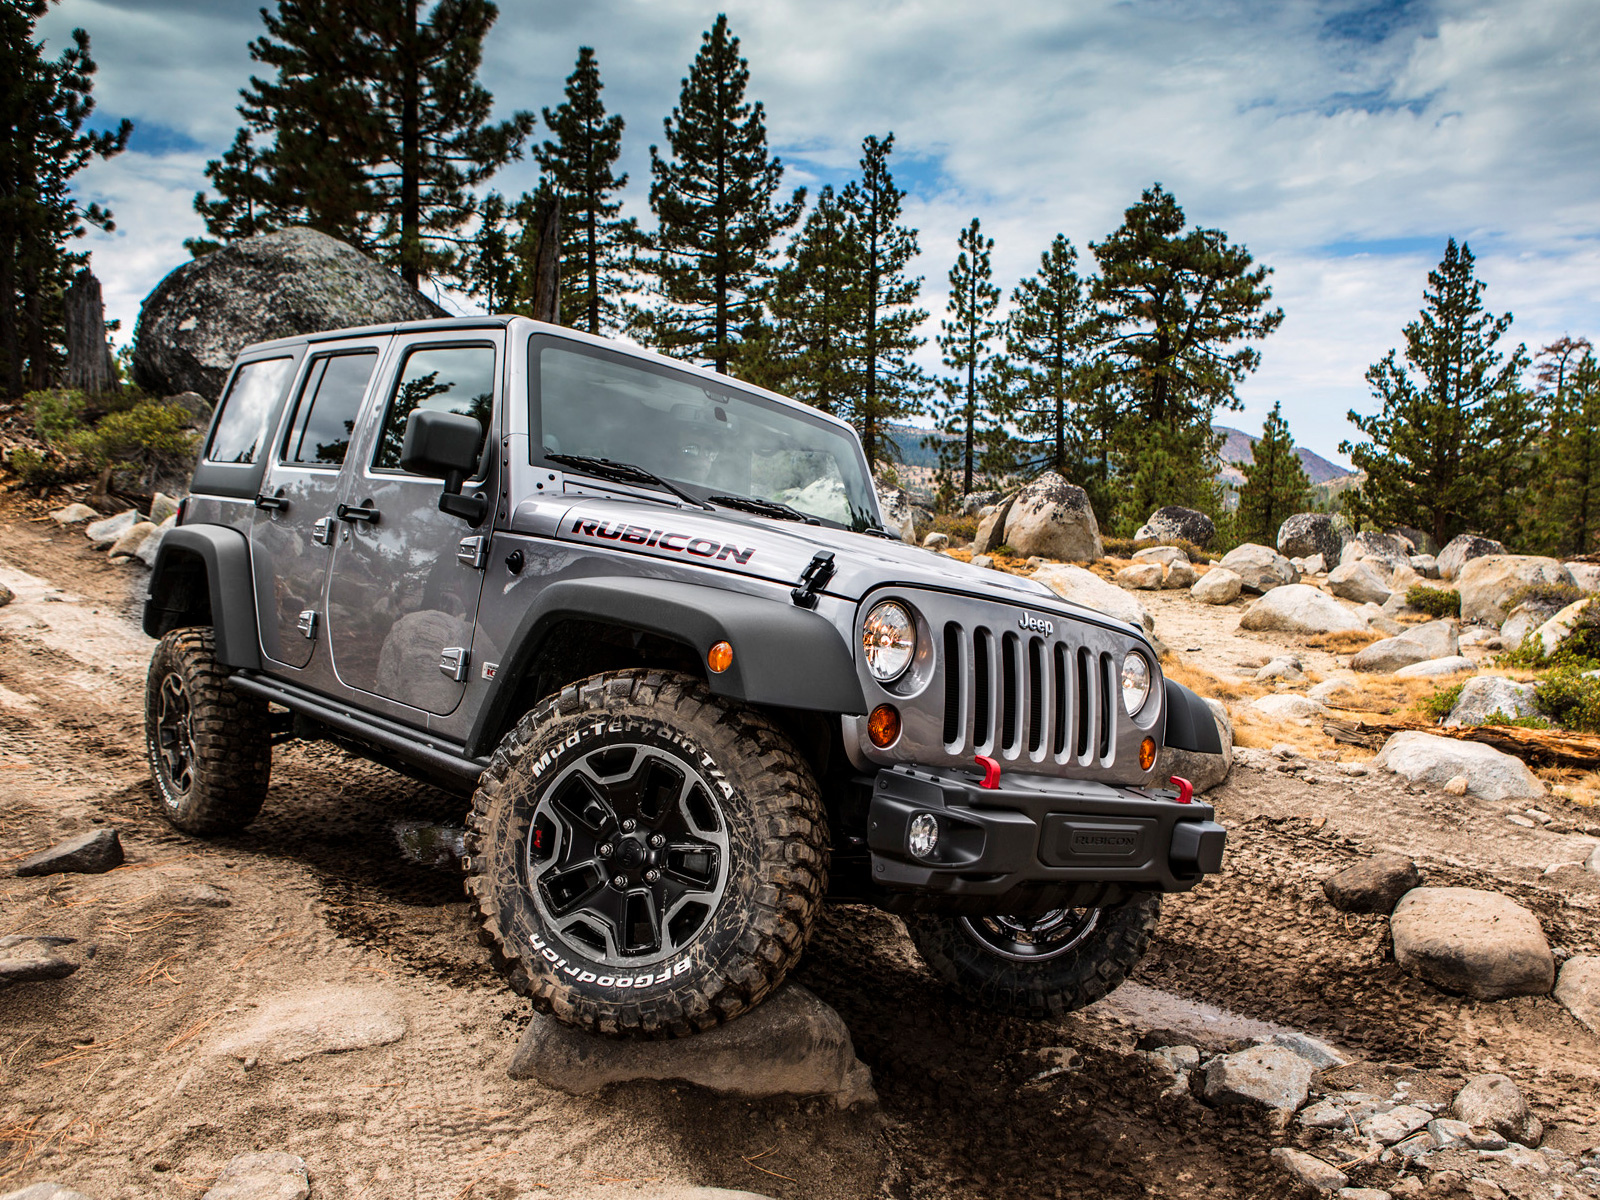 Jeep Wrangler Unlimited Rubicon #9